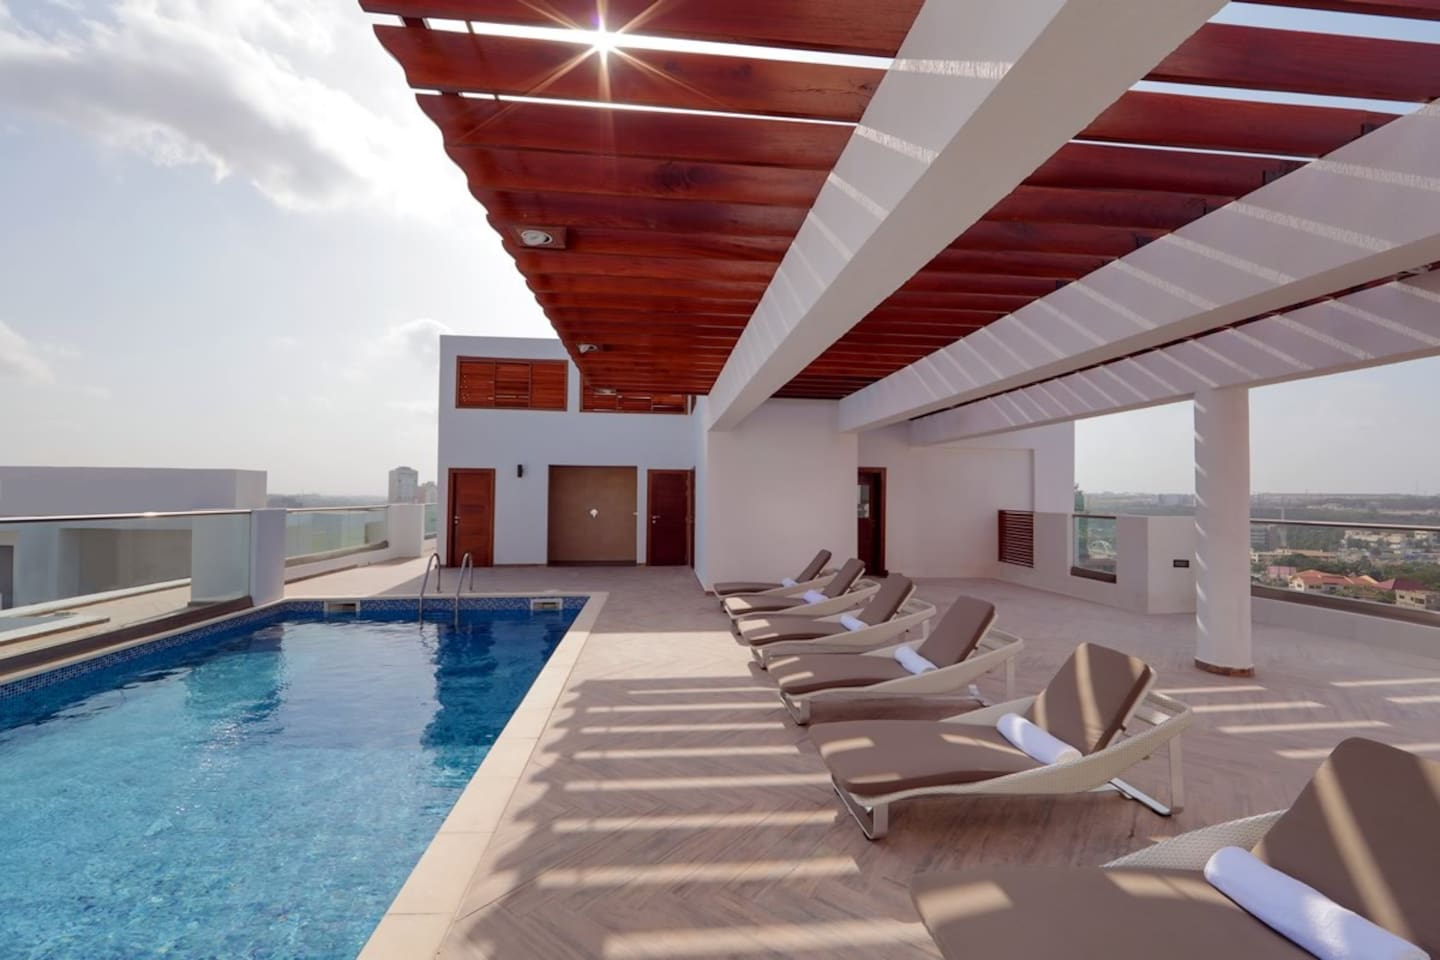 Rooftop Pool with a nice view